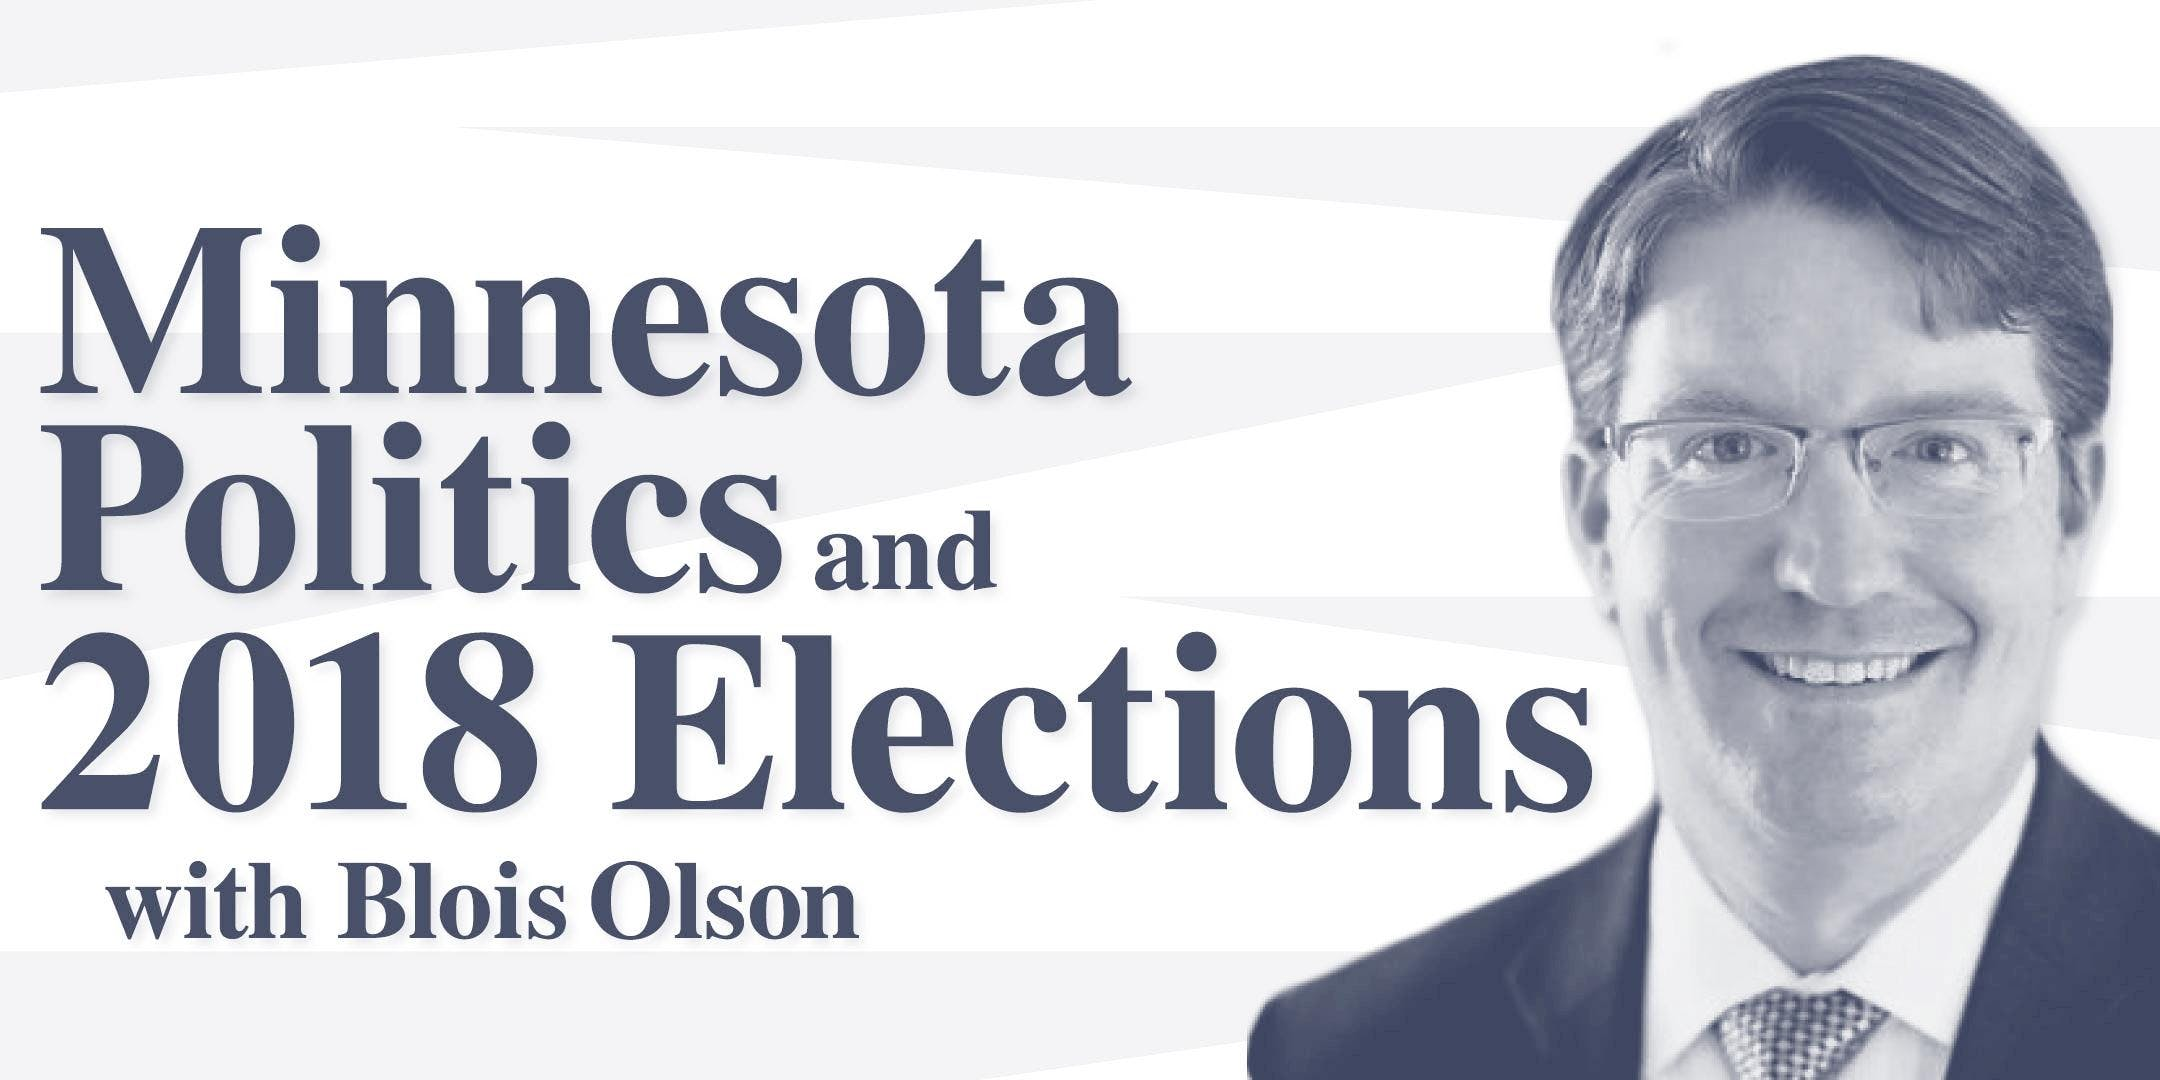 Minnesota Politics and 2018 Elections with Bl